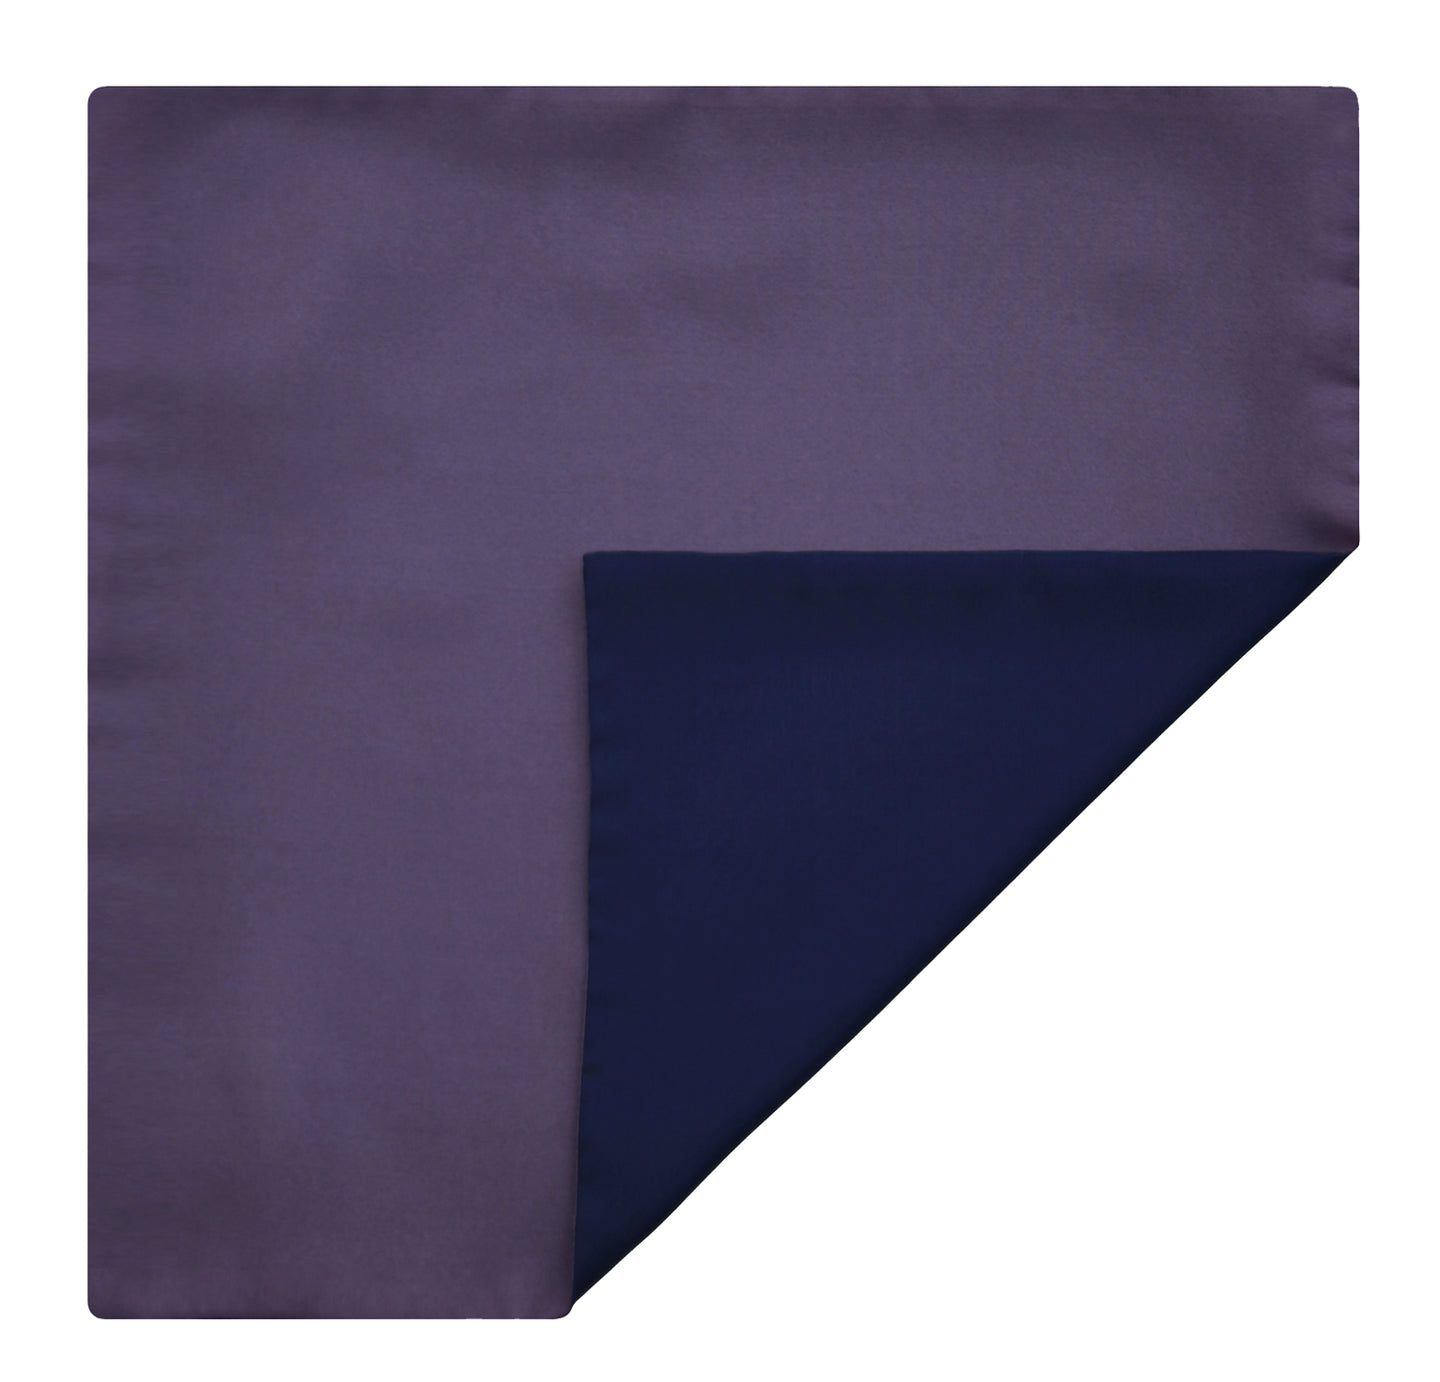 Mimi Fong Reversible Silk Pocket Square in Lavender & Navy